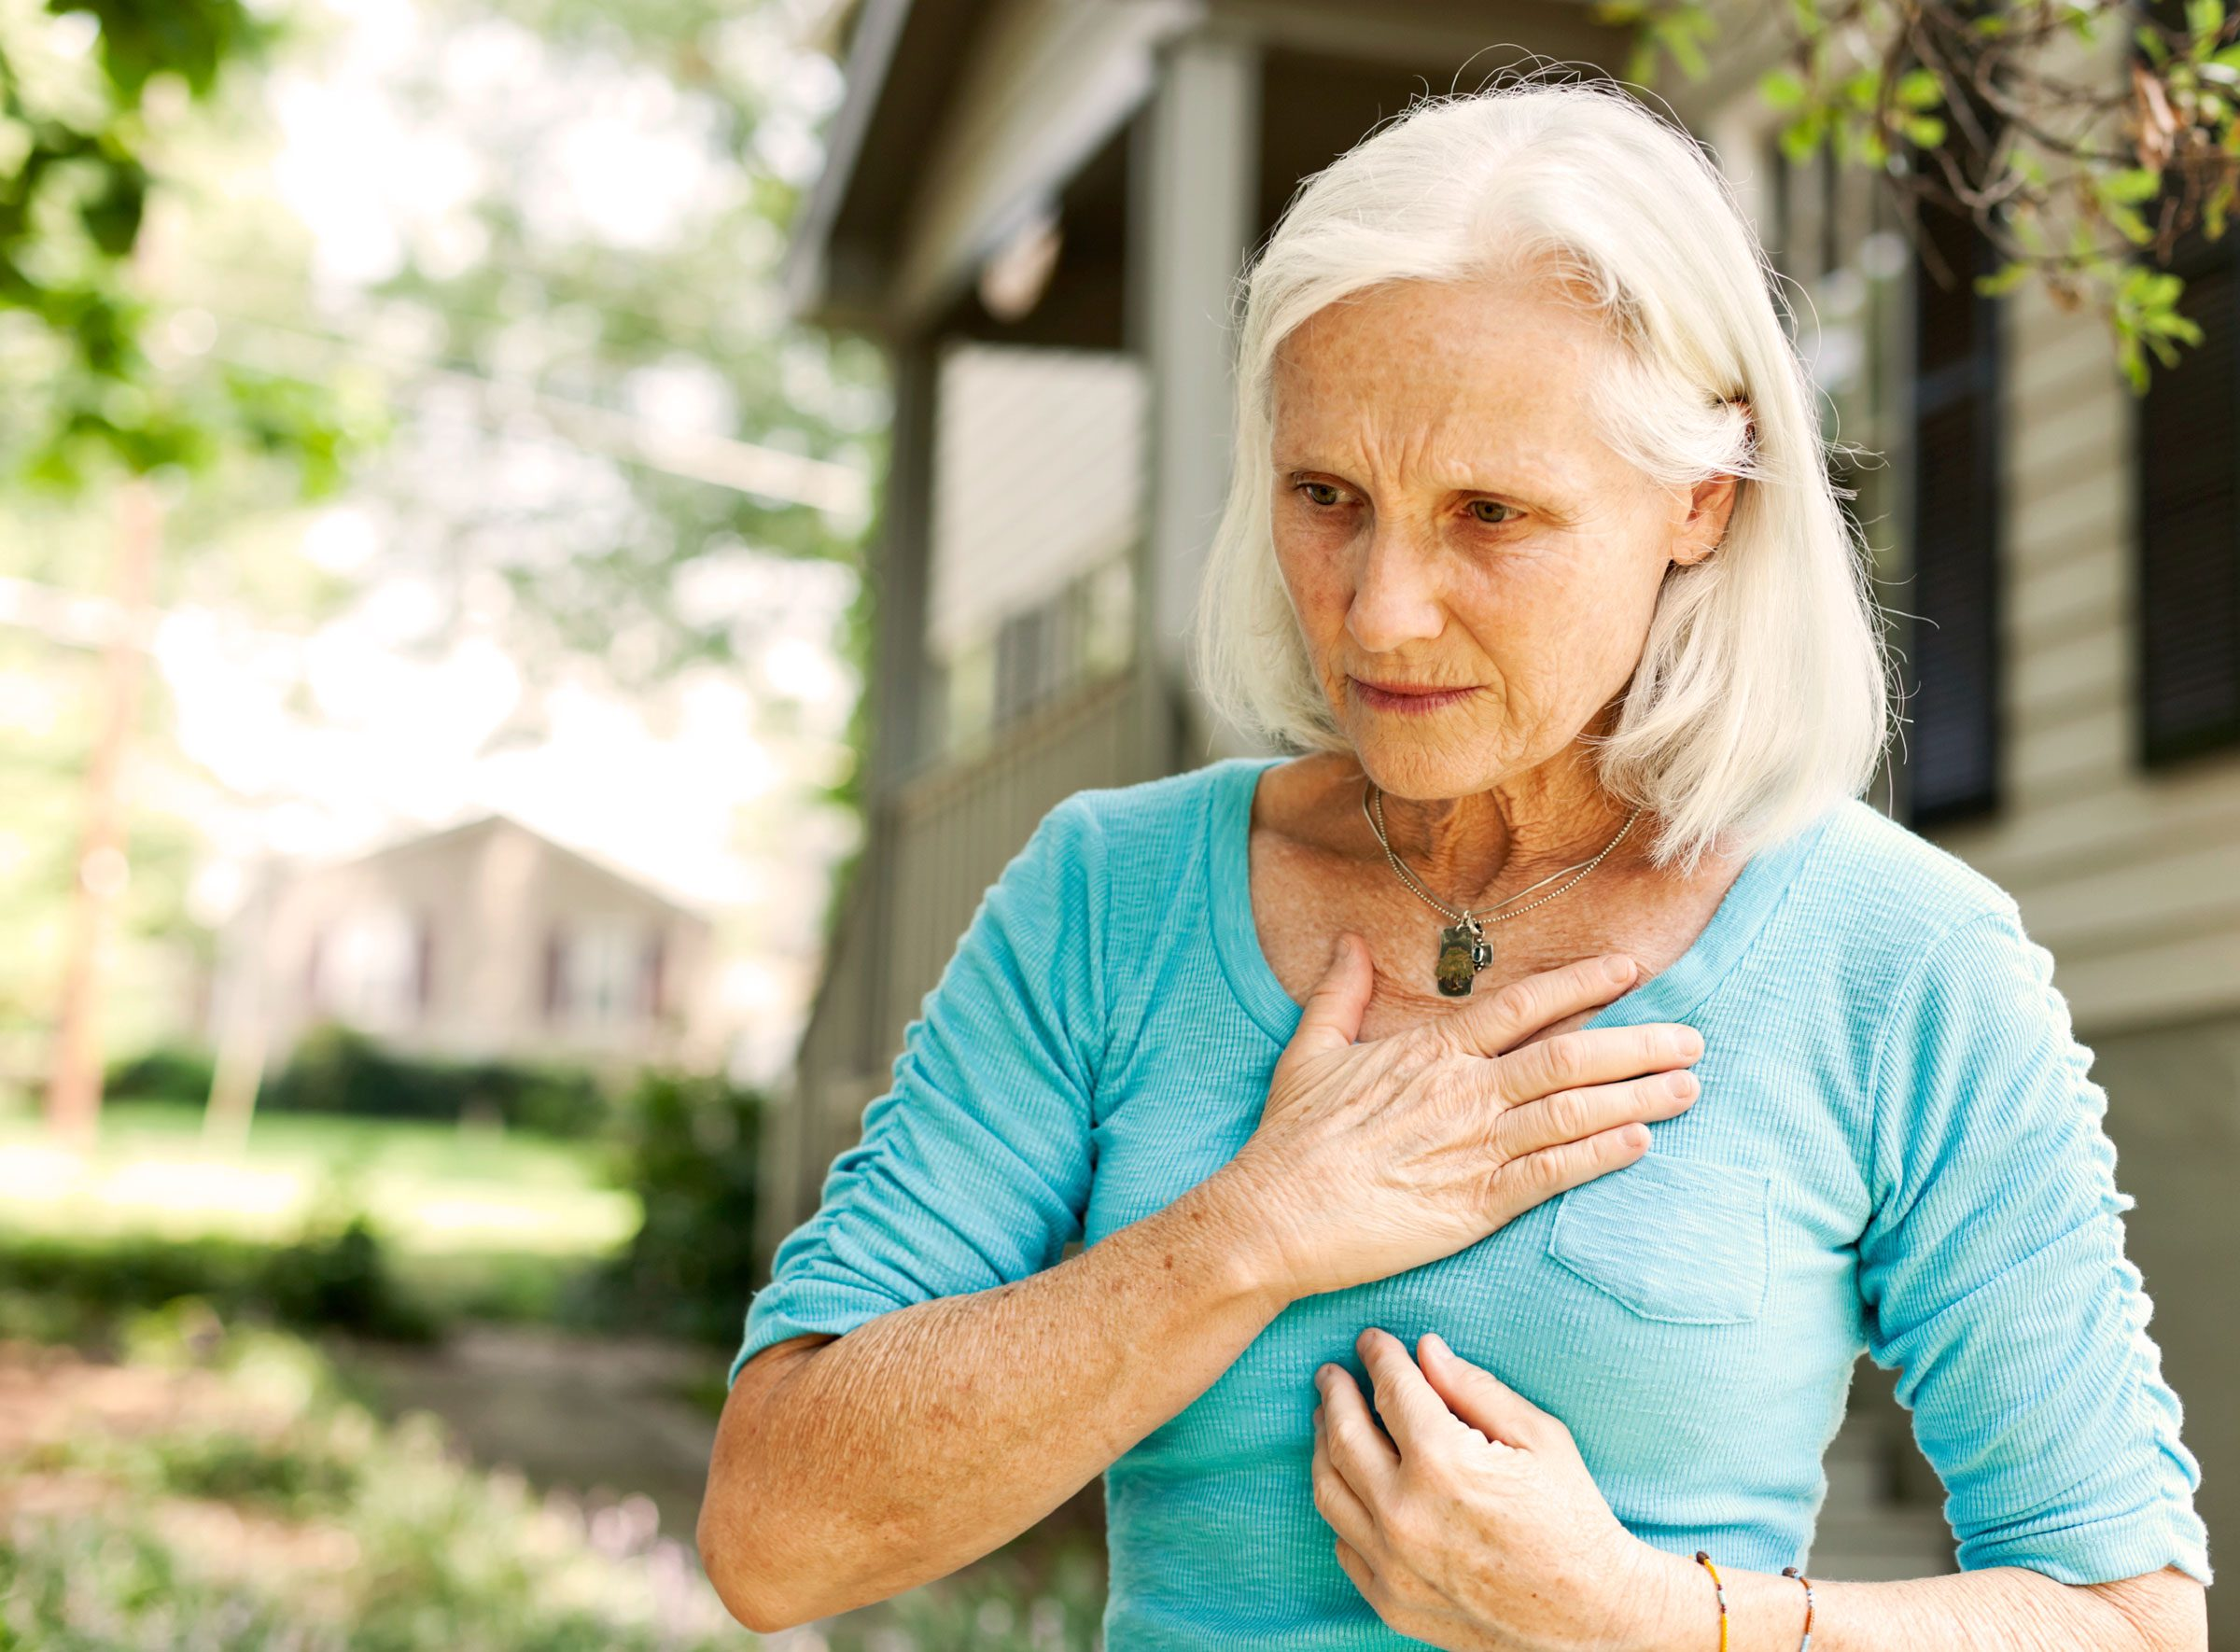 Heart attack symptoms can be more subtle